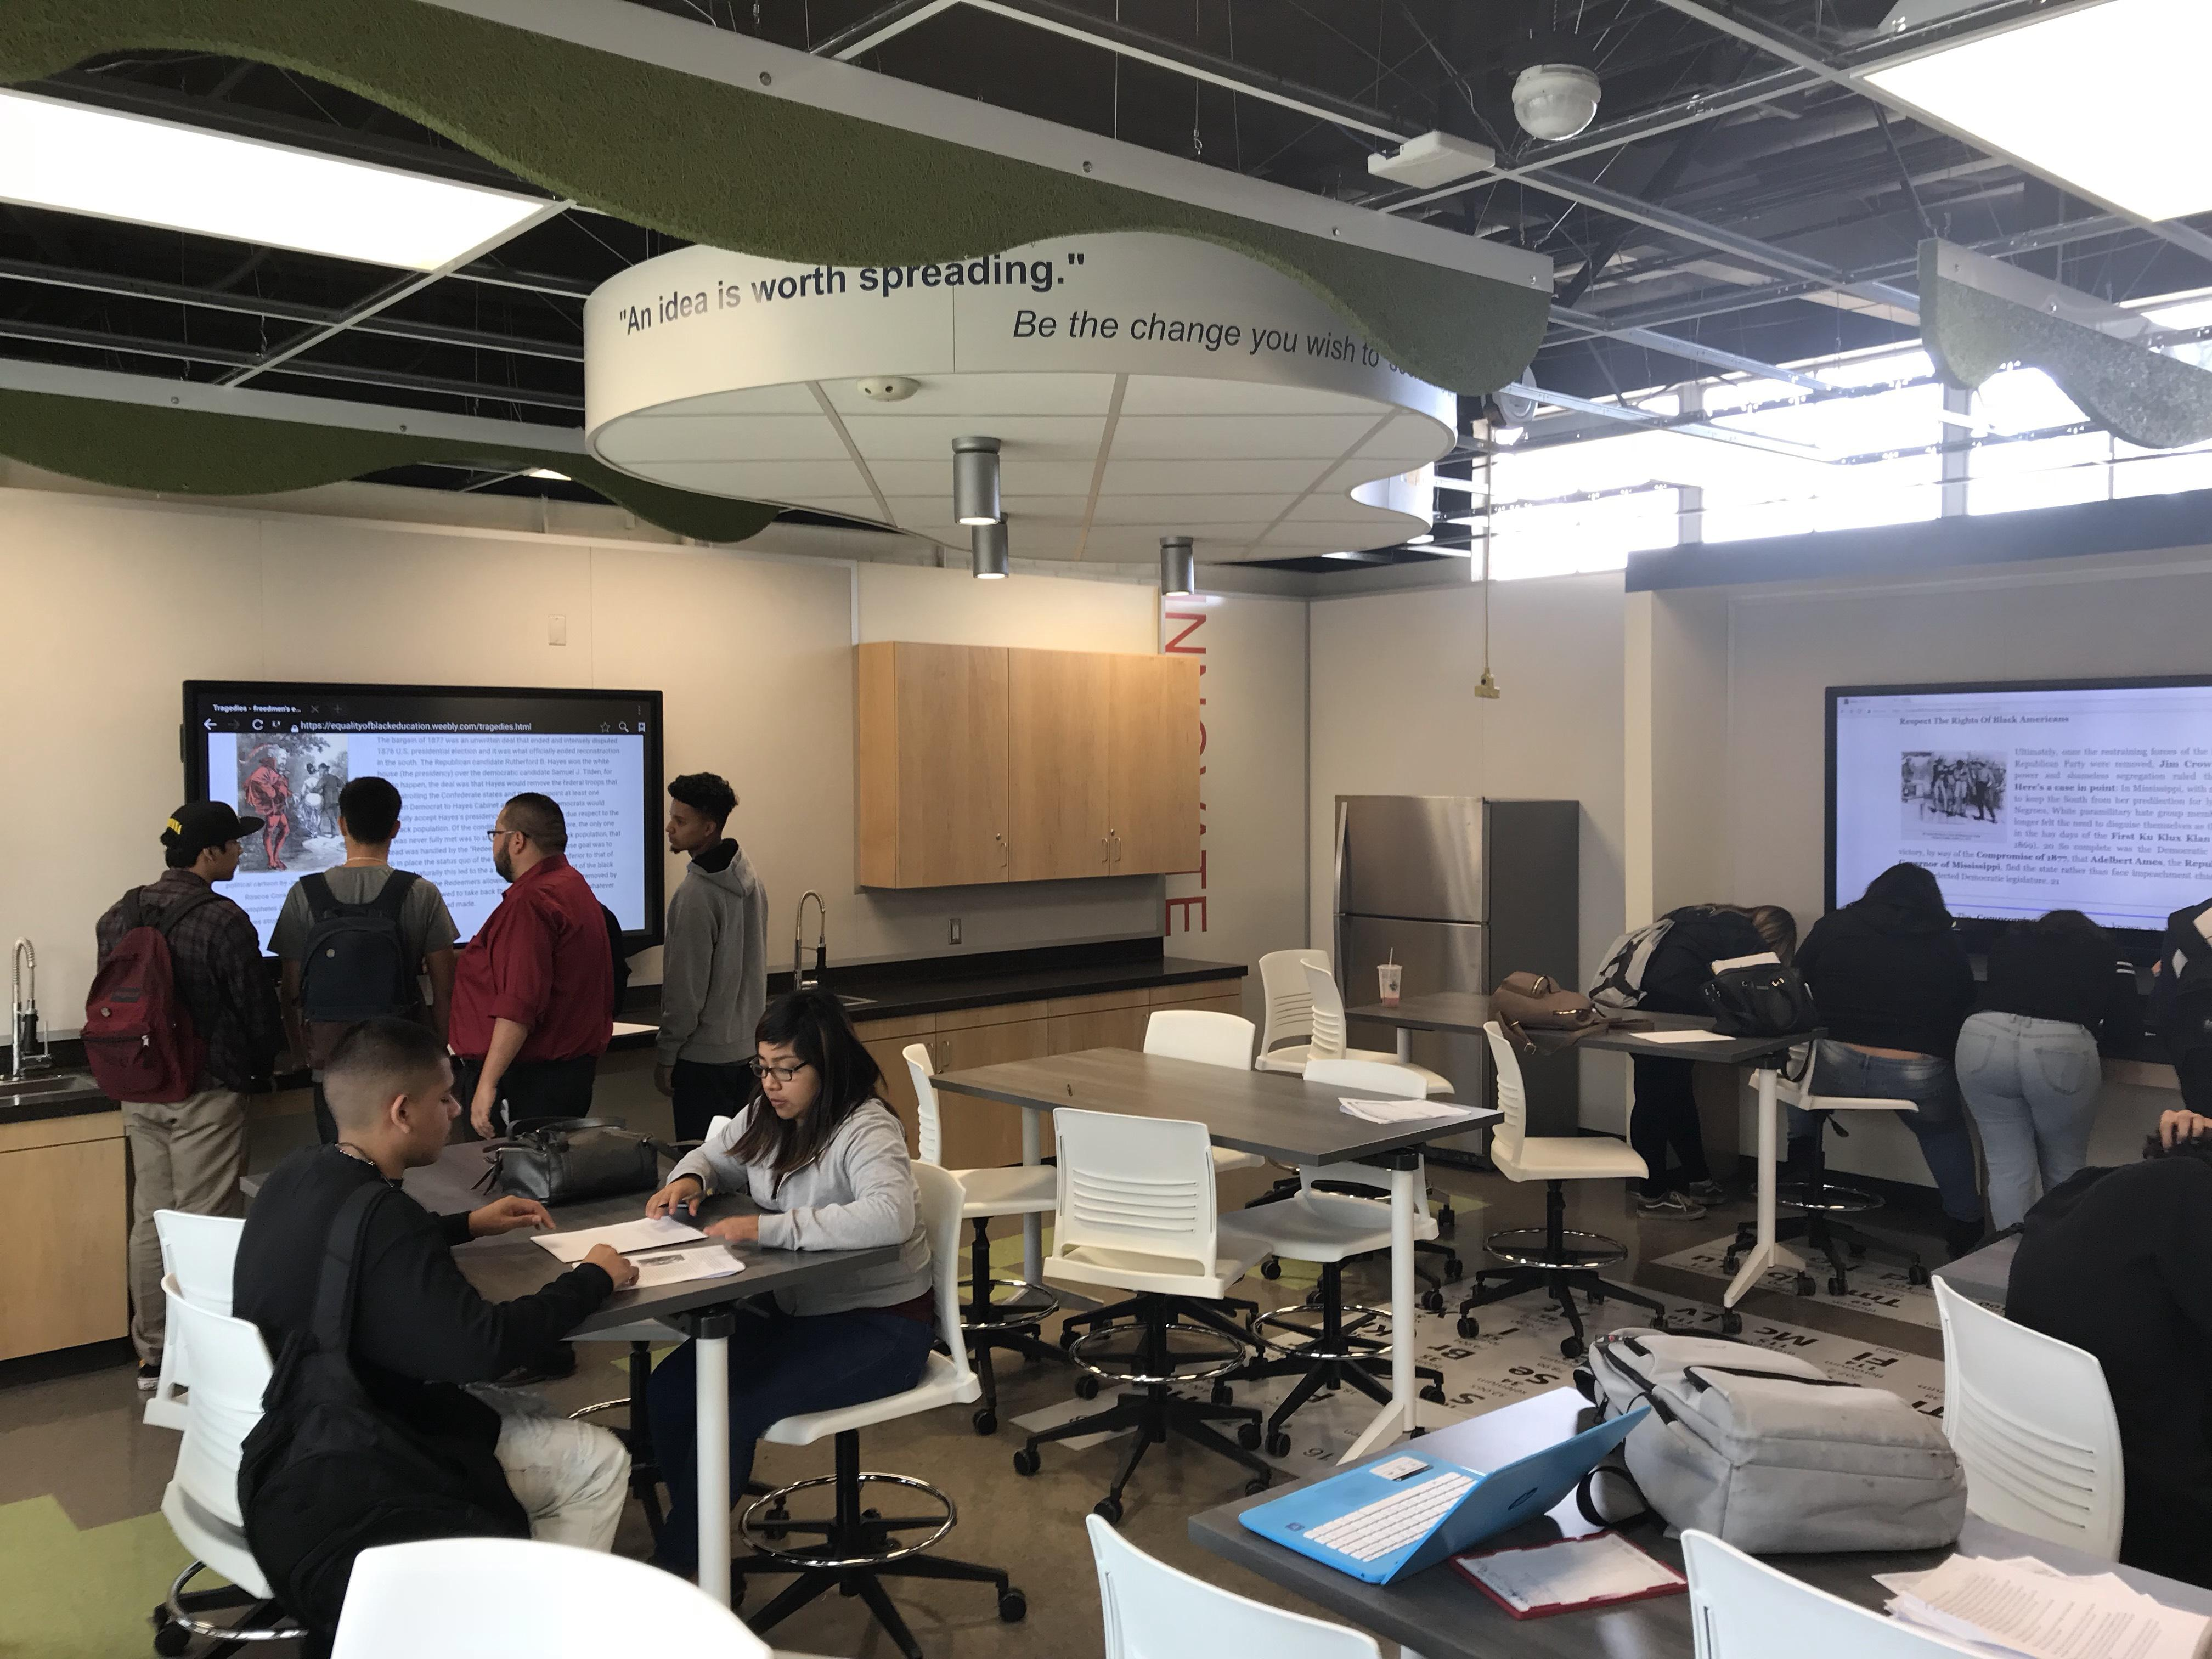 Salazar students enjoy learning in the new Science/Innovation Lab.